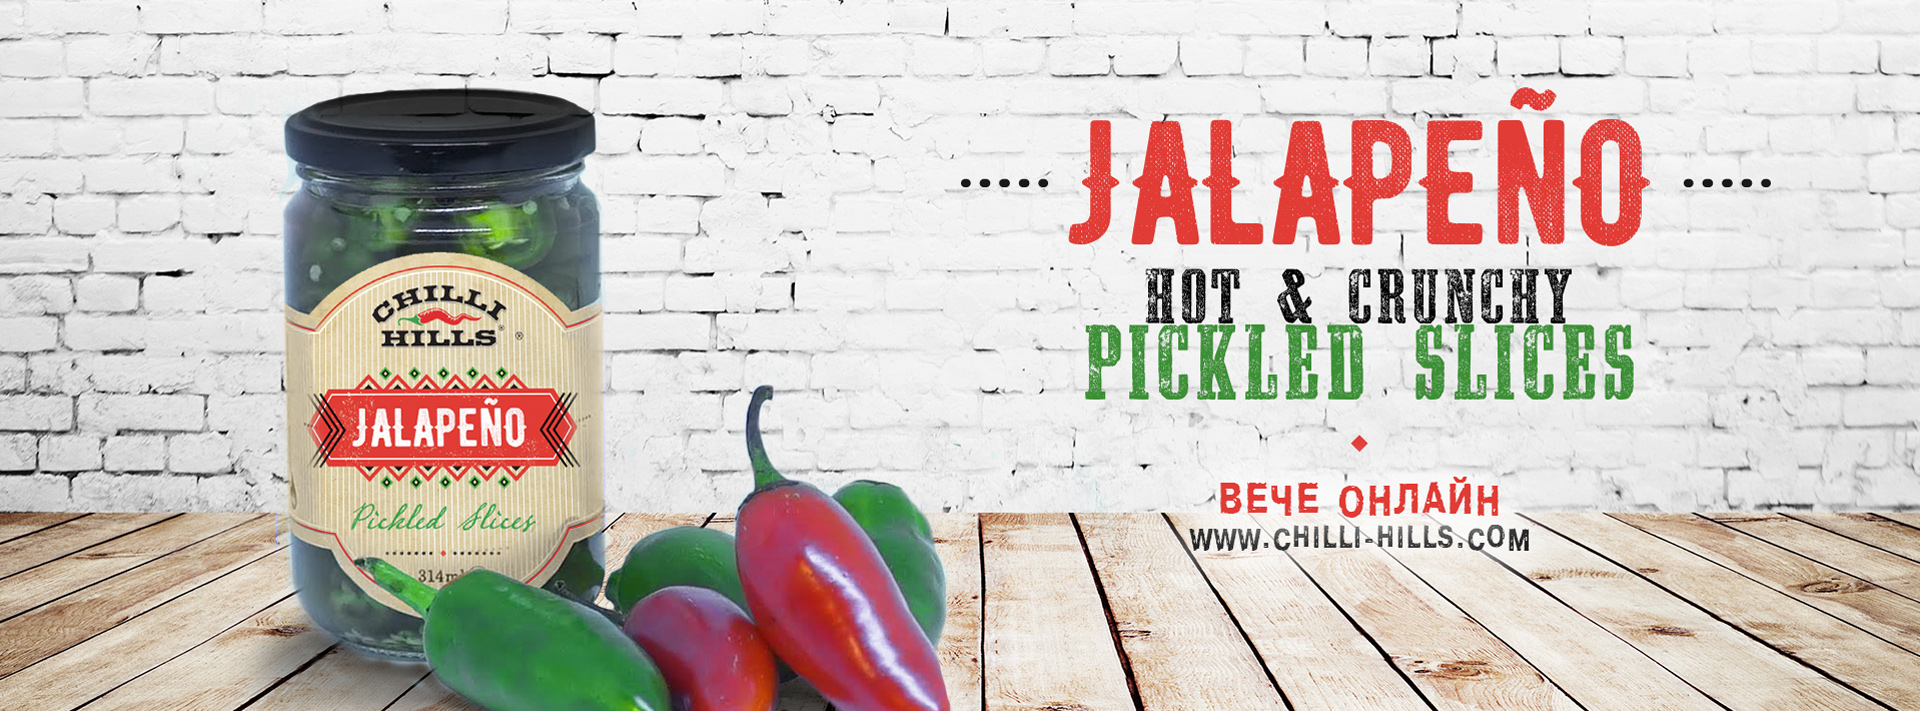 Jalapeno_Site_cover